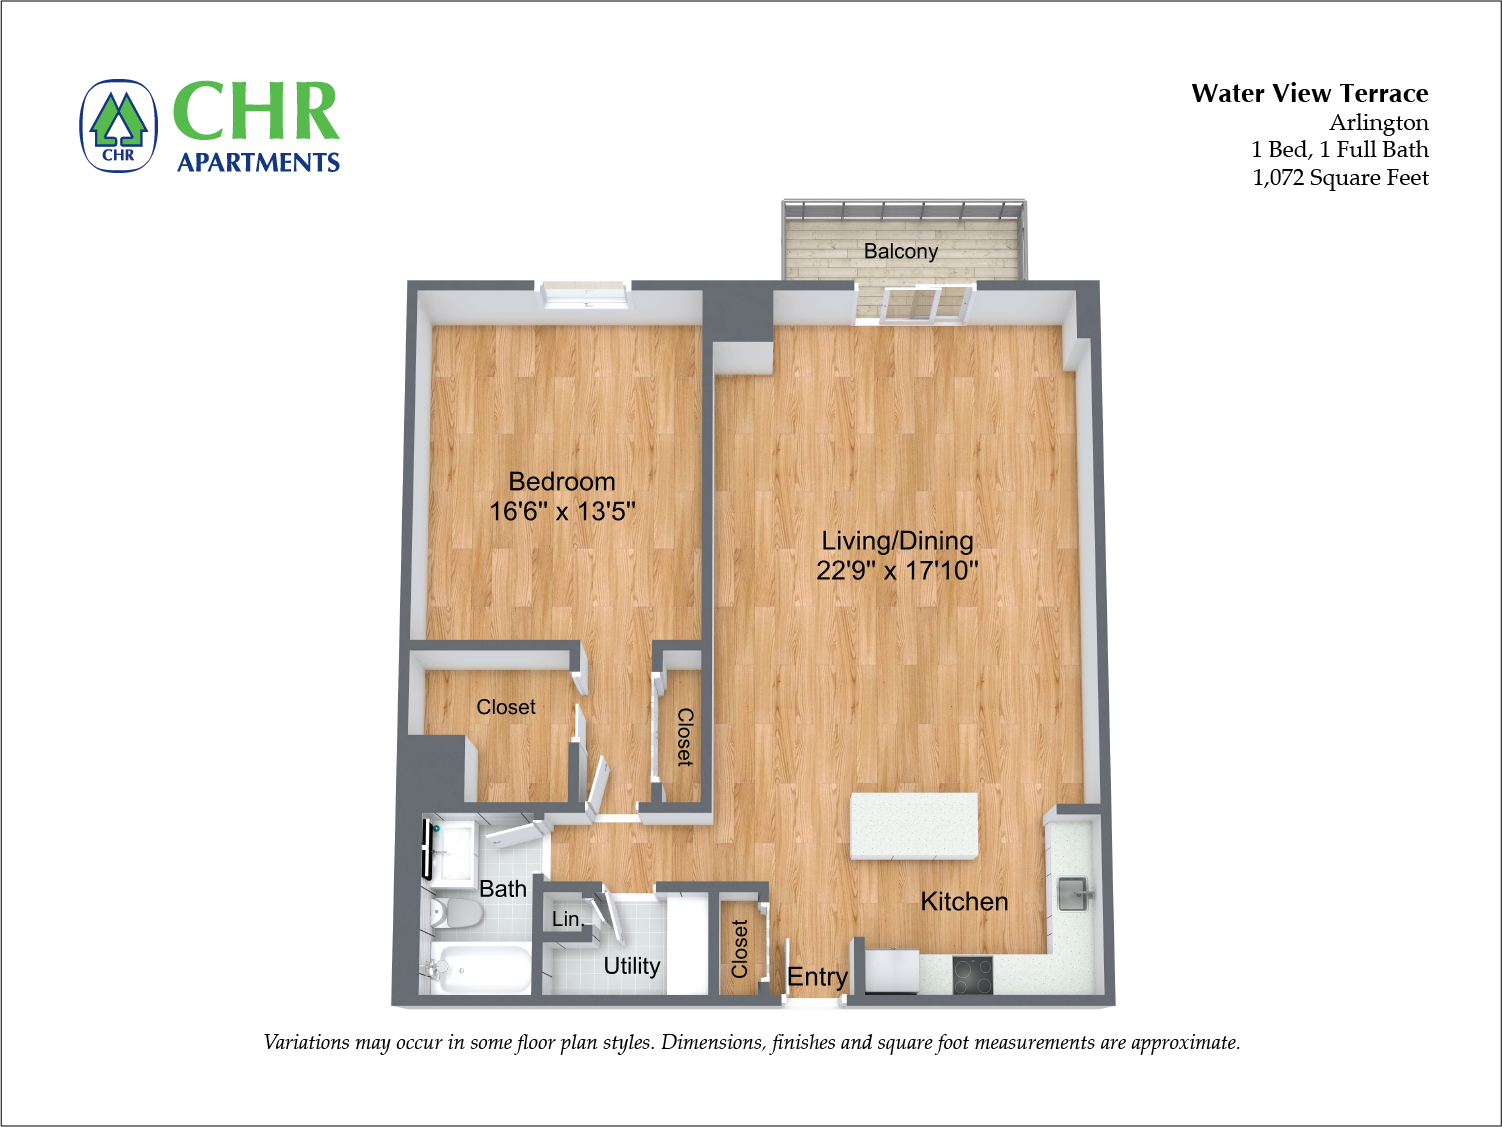 Click to view 1 BR Extra Large w/ Balcony floor plan gallery